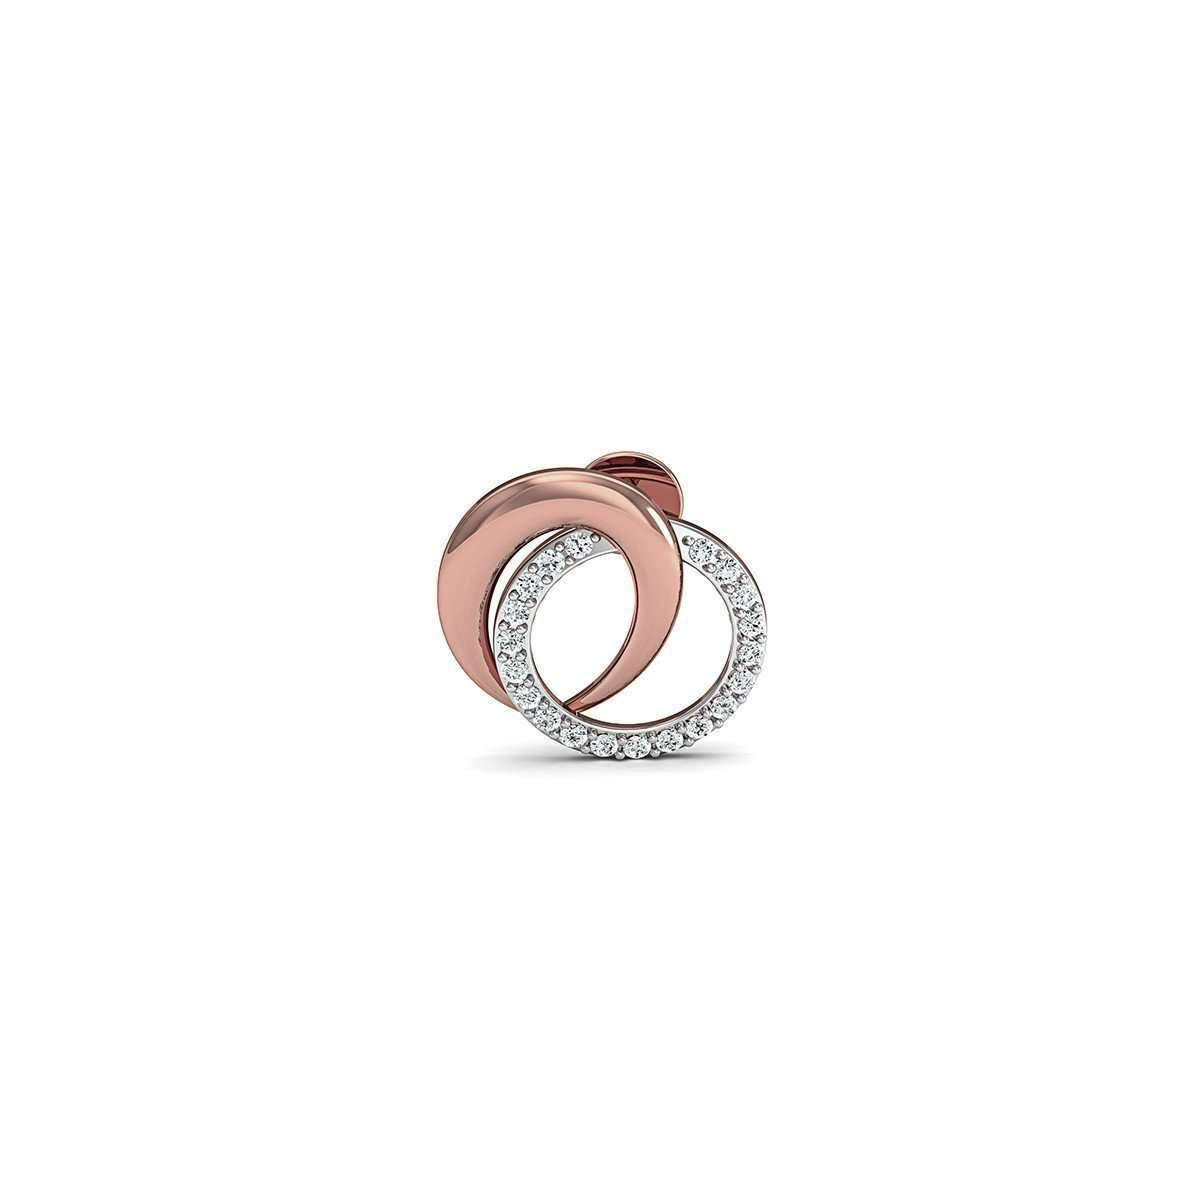 Diamoire Jewels 18kt Rose Gold Nature Inspired Pave Earrings with Premium Quality Diamonds aqppLIWS9C